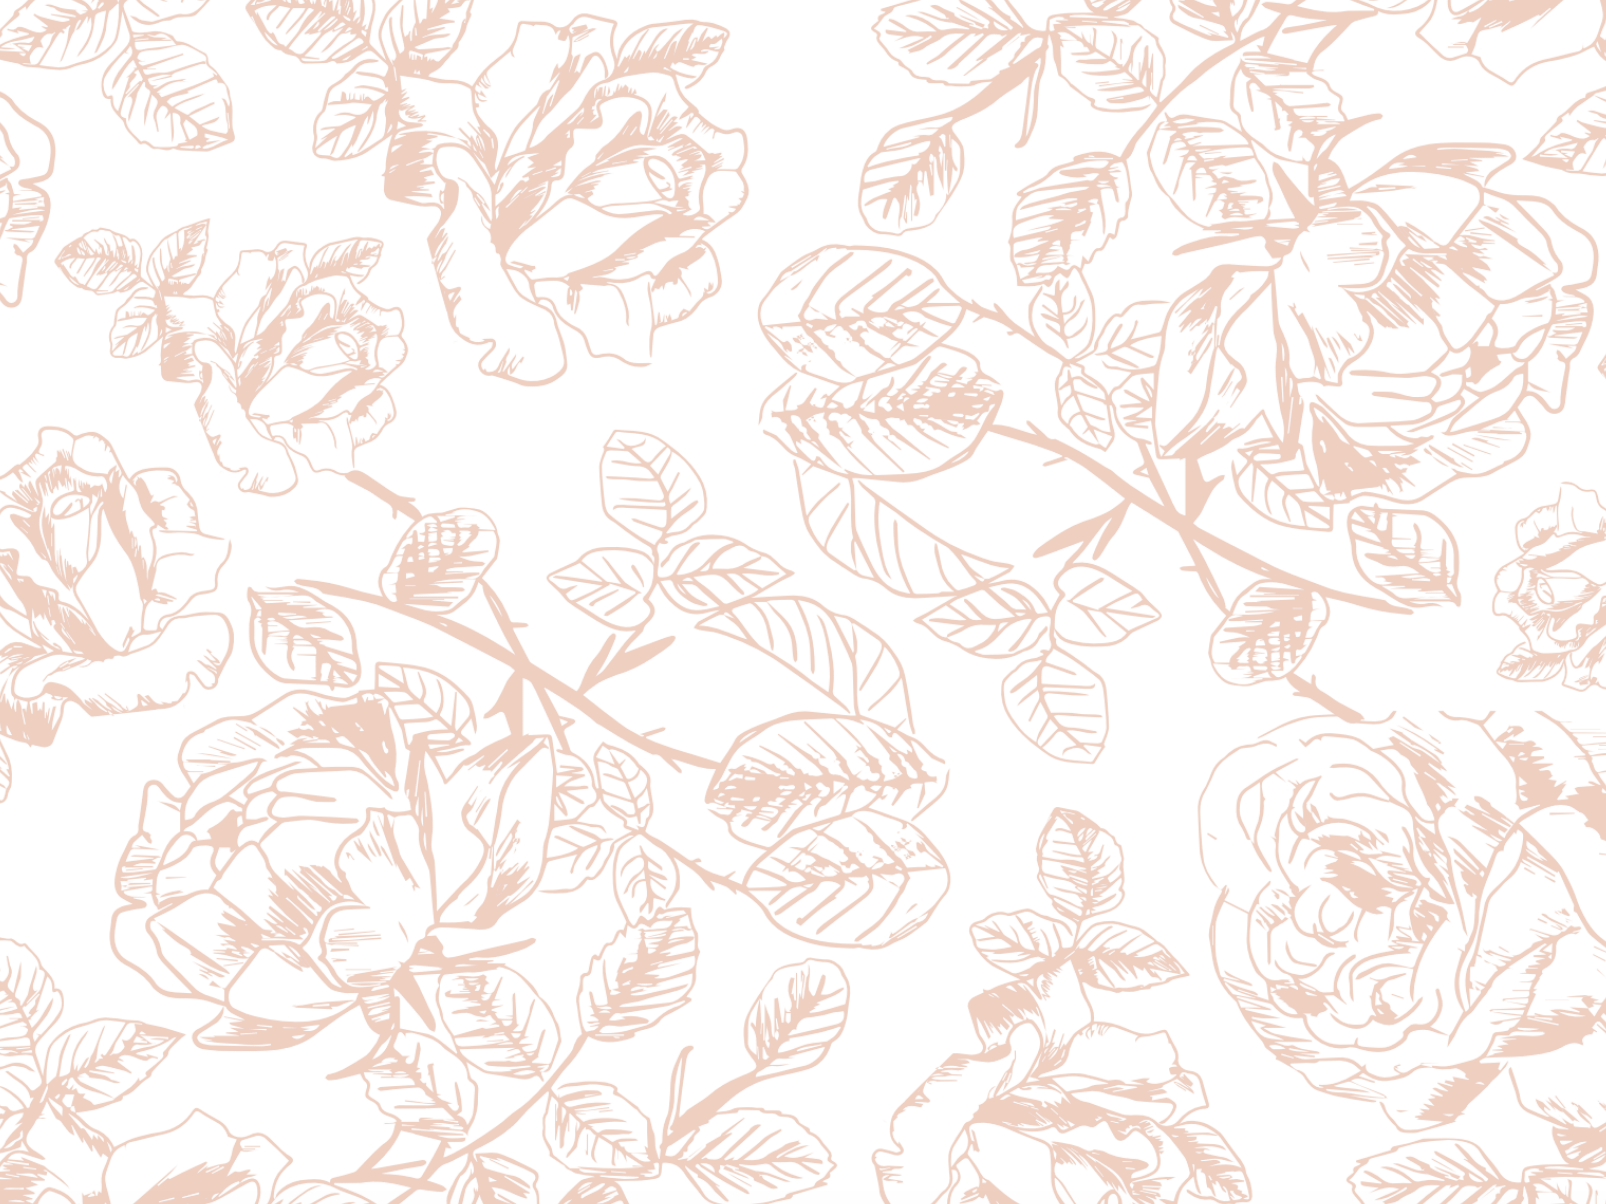 Vintage Floral Pattern For A Moody Photographer By Bri Summers On